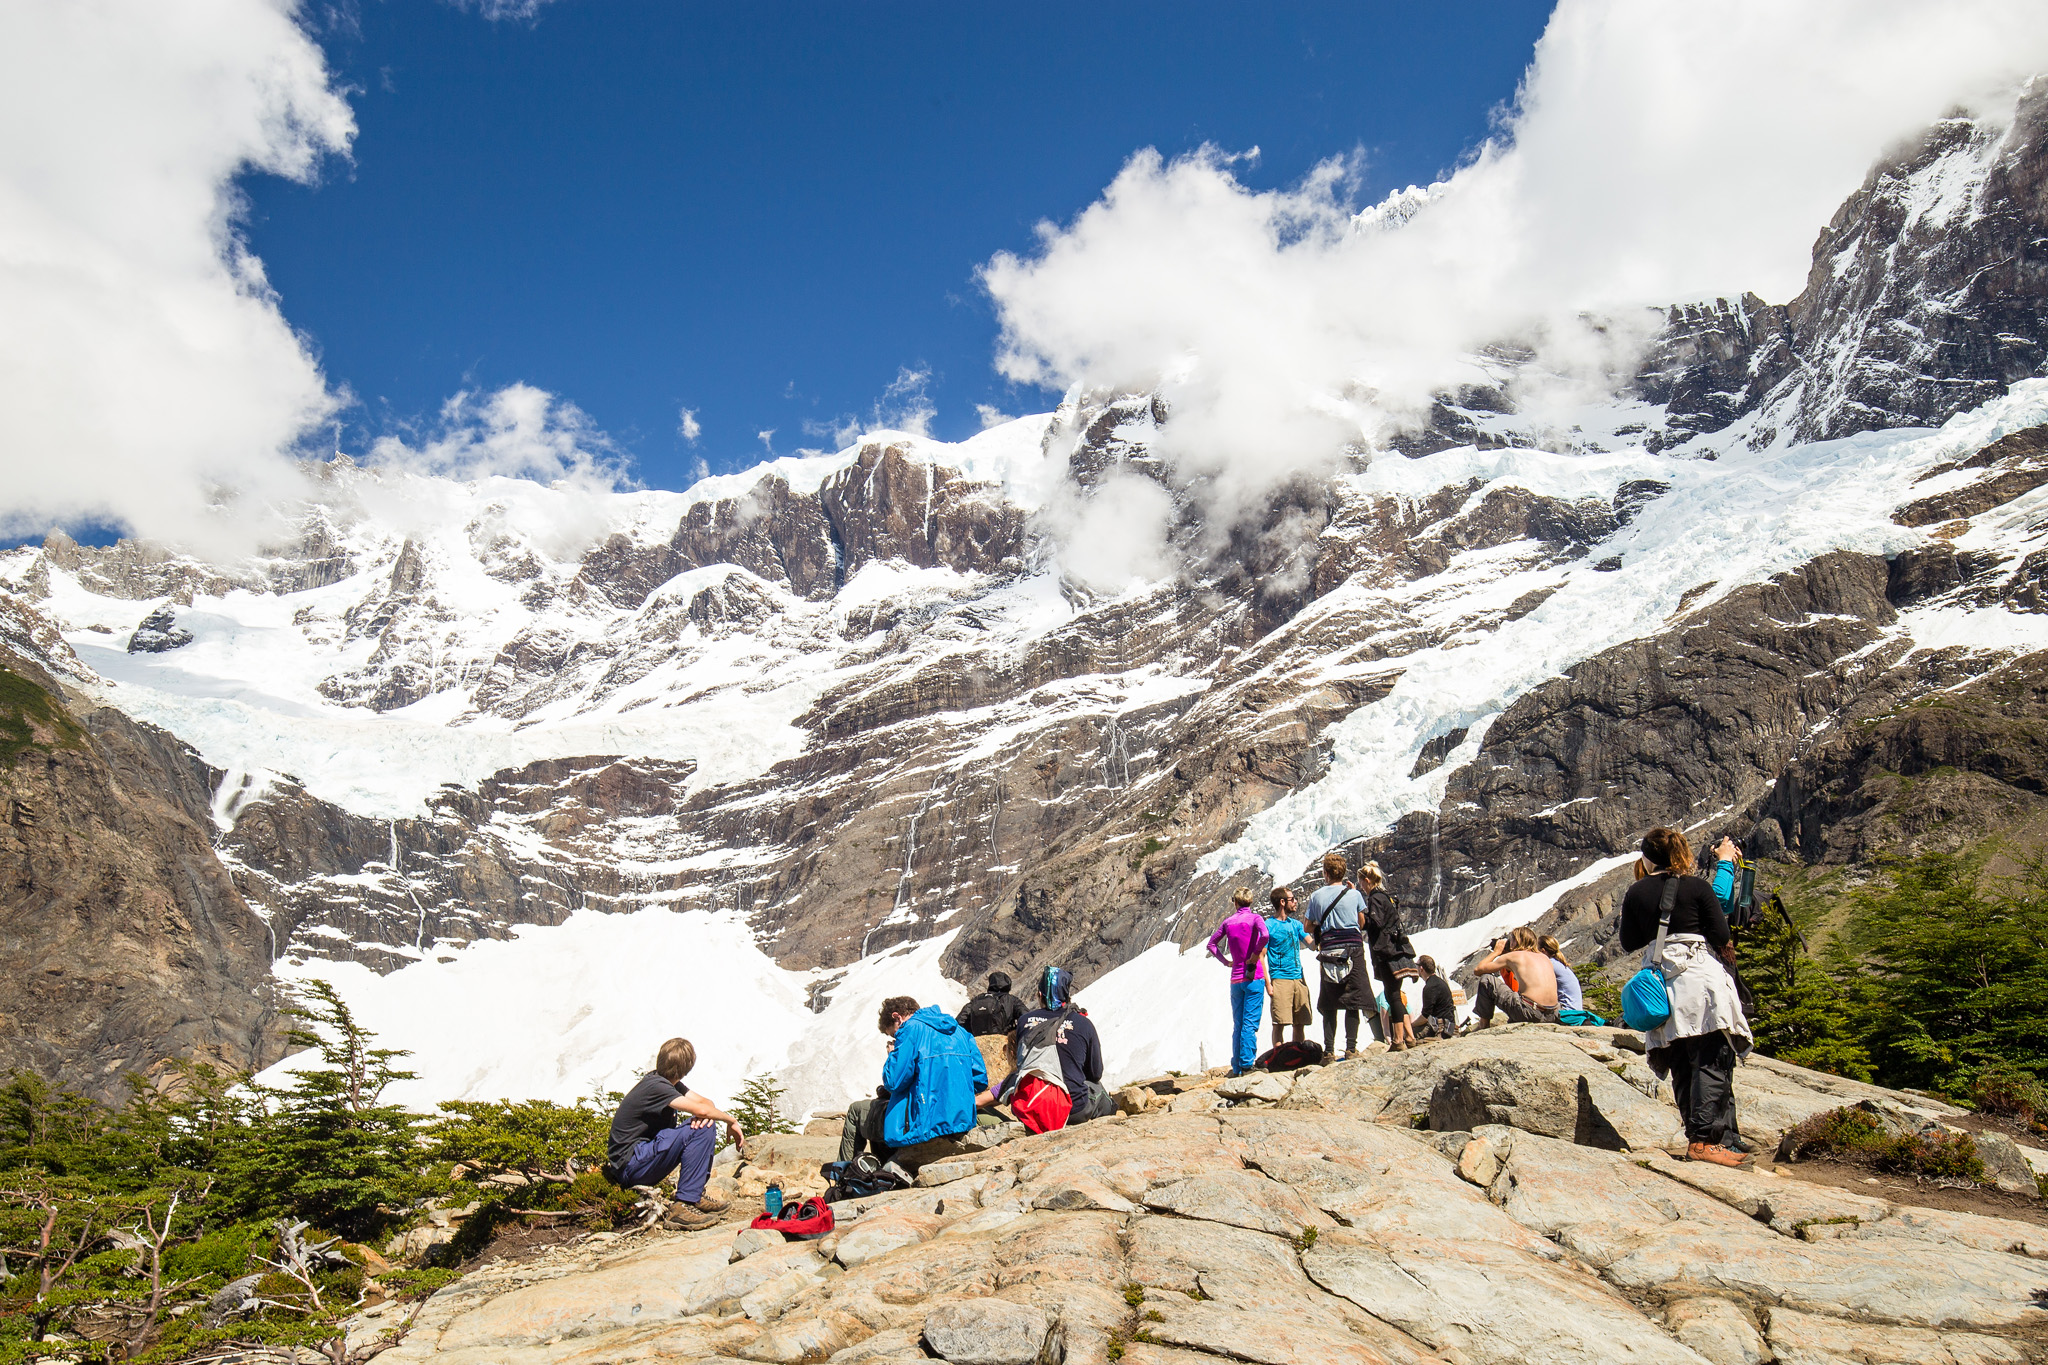 Wedding-Travellers-Overlanding-Destination-Wedding-Chile-Torres-del-Paine-glacier-Valley-French-glaciar-valle-frances-ice-snow-mountain-mirador-viewpoint-avalancha-avalanche